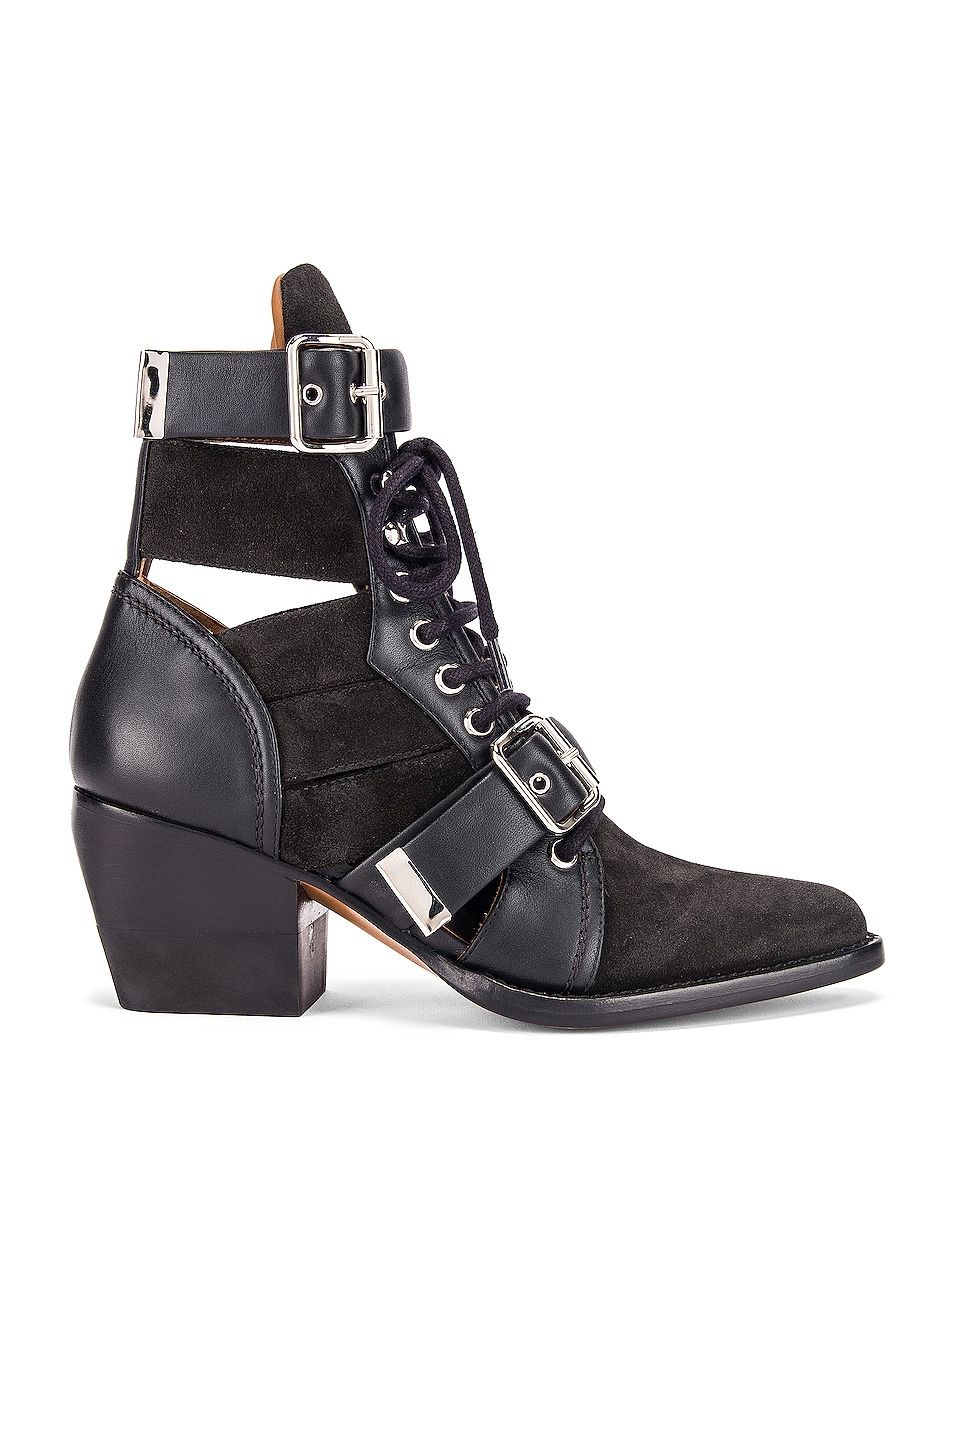 Chloe Lace Up Buckle Boots Charcoal Black outlet